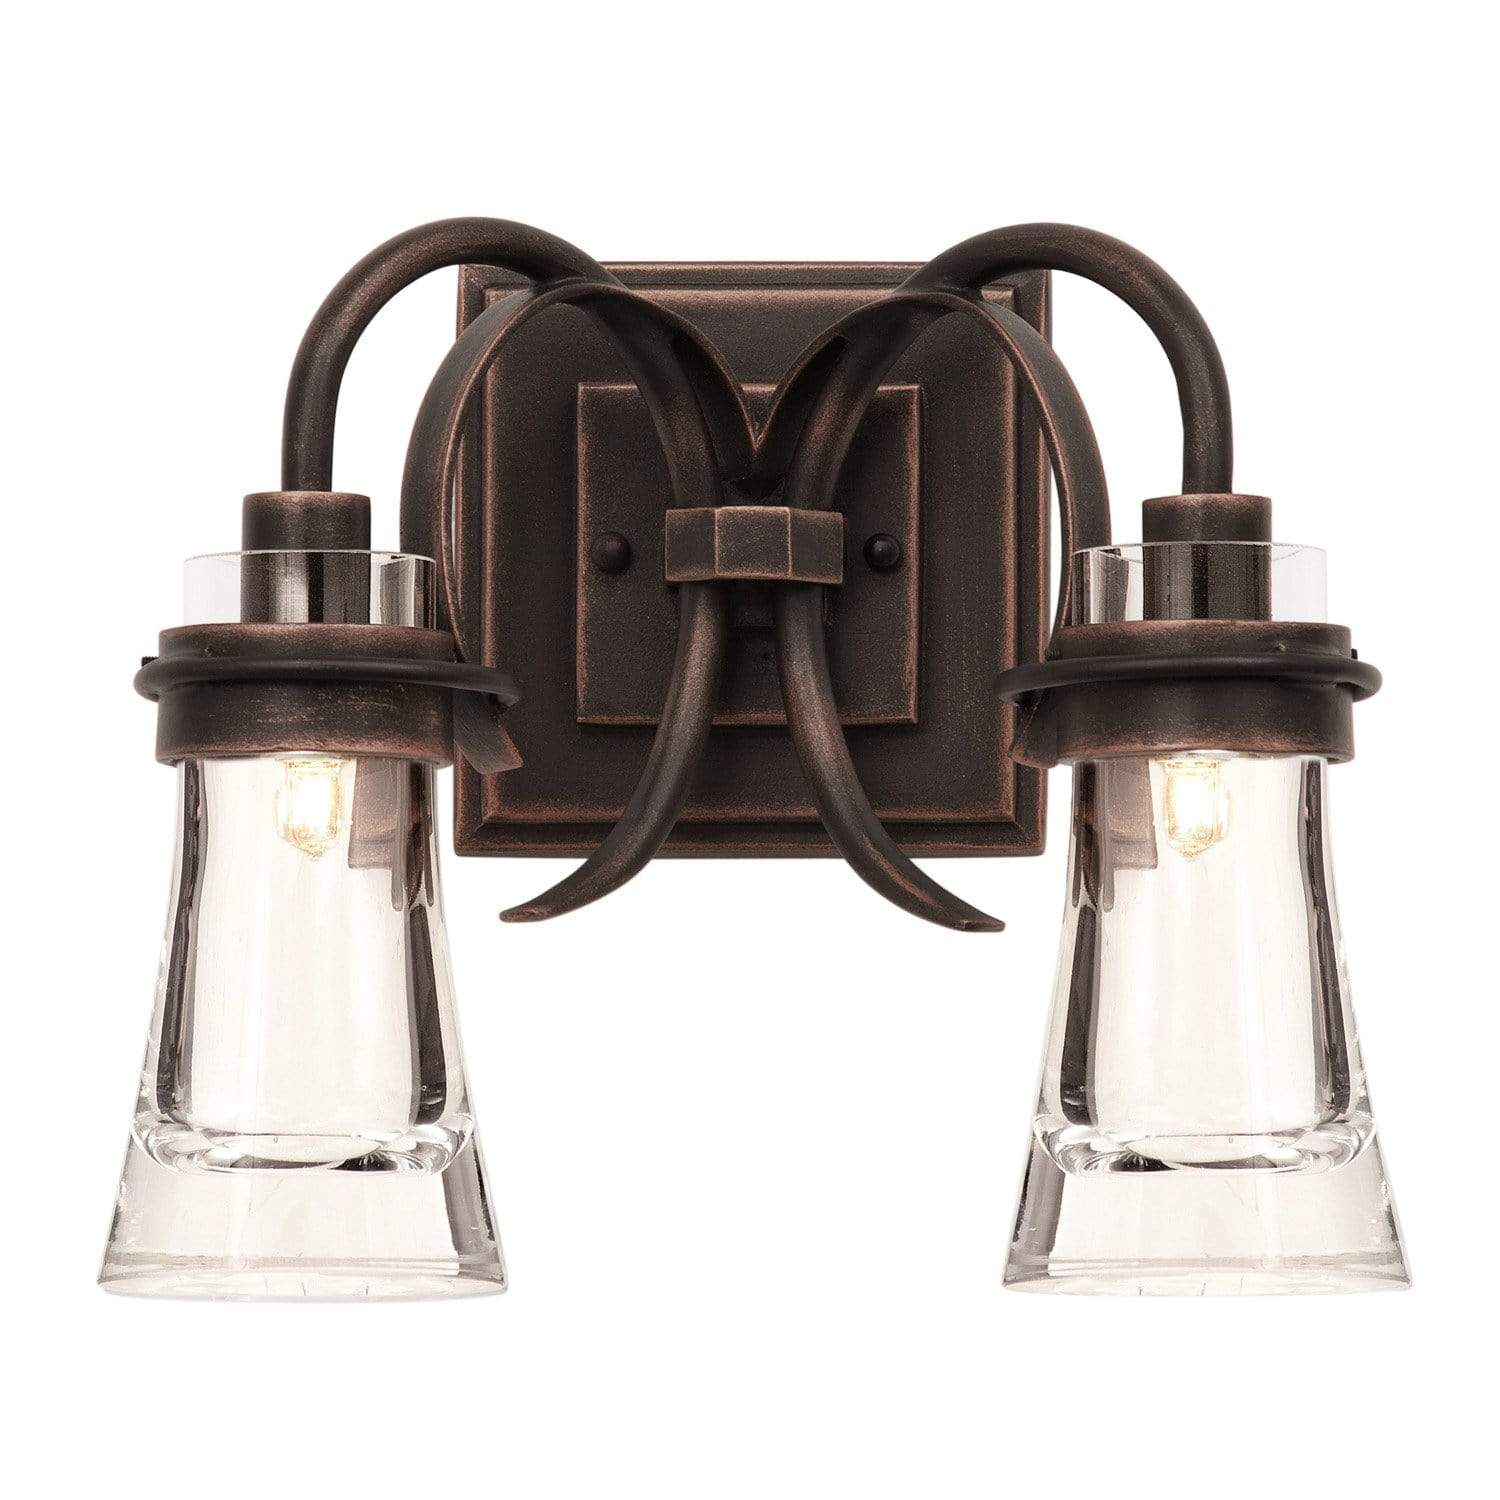 Kalco Lighting Wall Sconces Antique Copper Dover 2 Light Bath By Kalco Lighting 2912